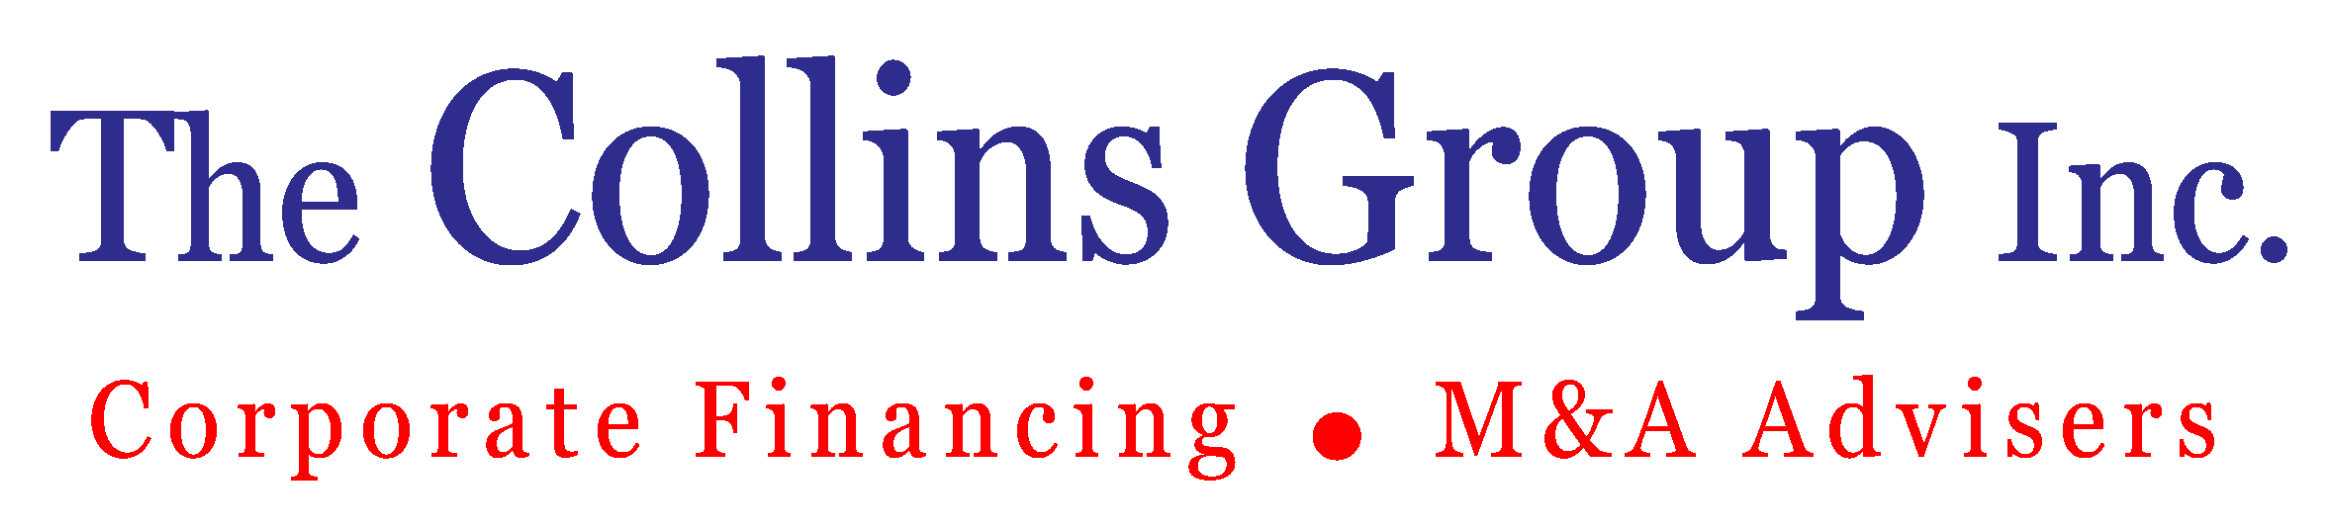 The Collins Group Inc.